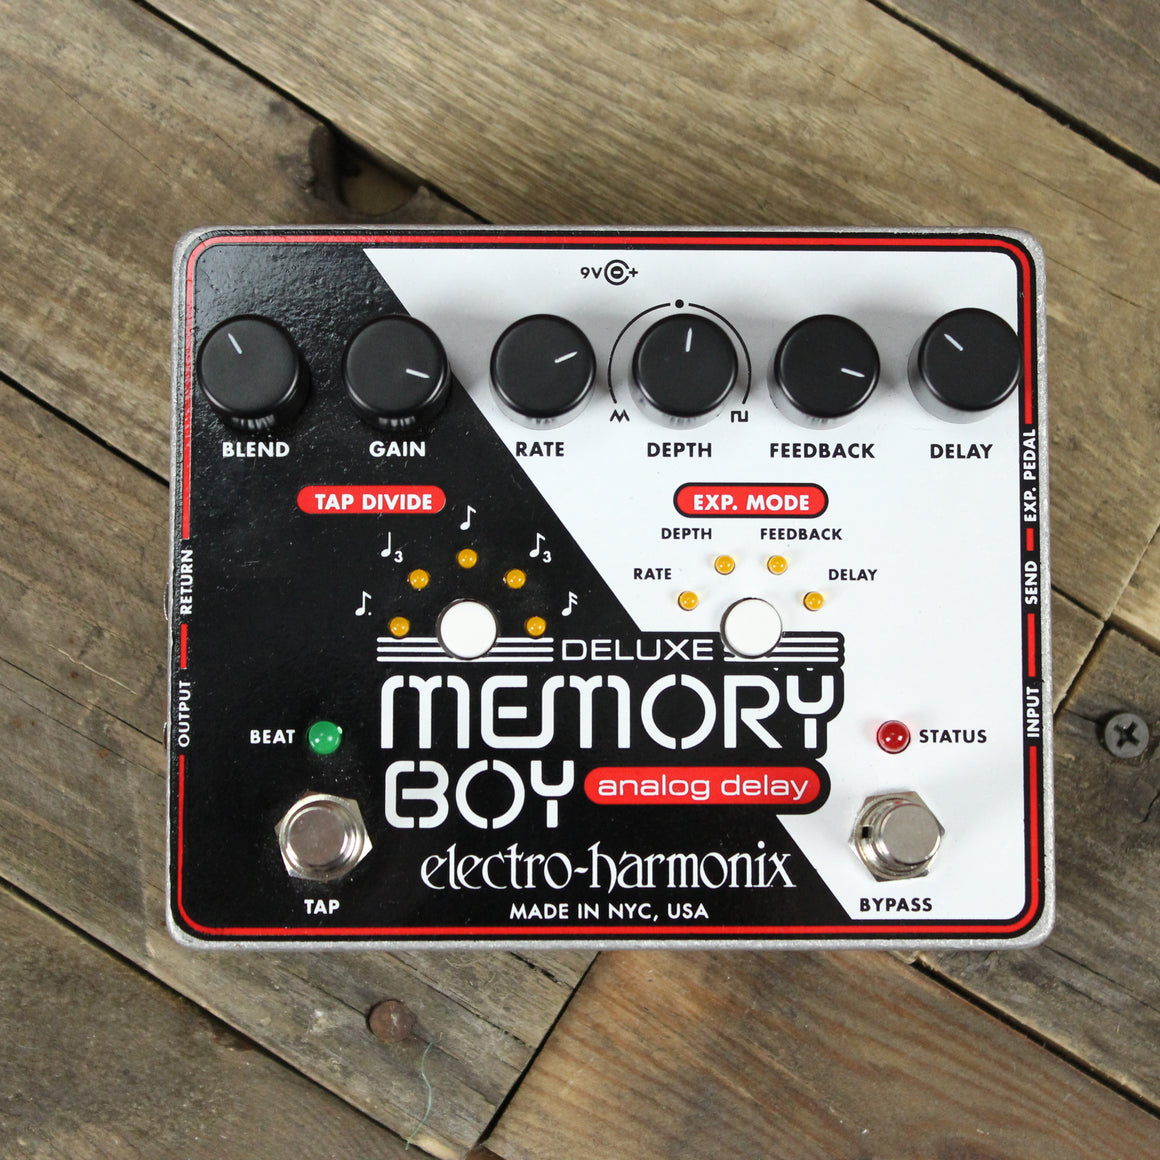 Pre-Owned Electro-Harmonix Memory Boy Deluxe Analog Delay